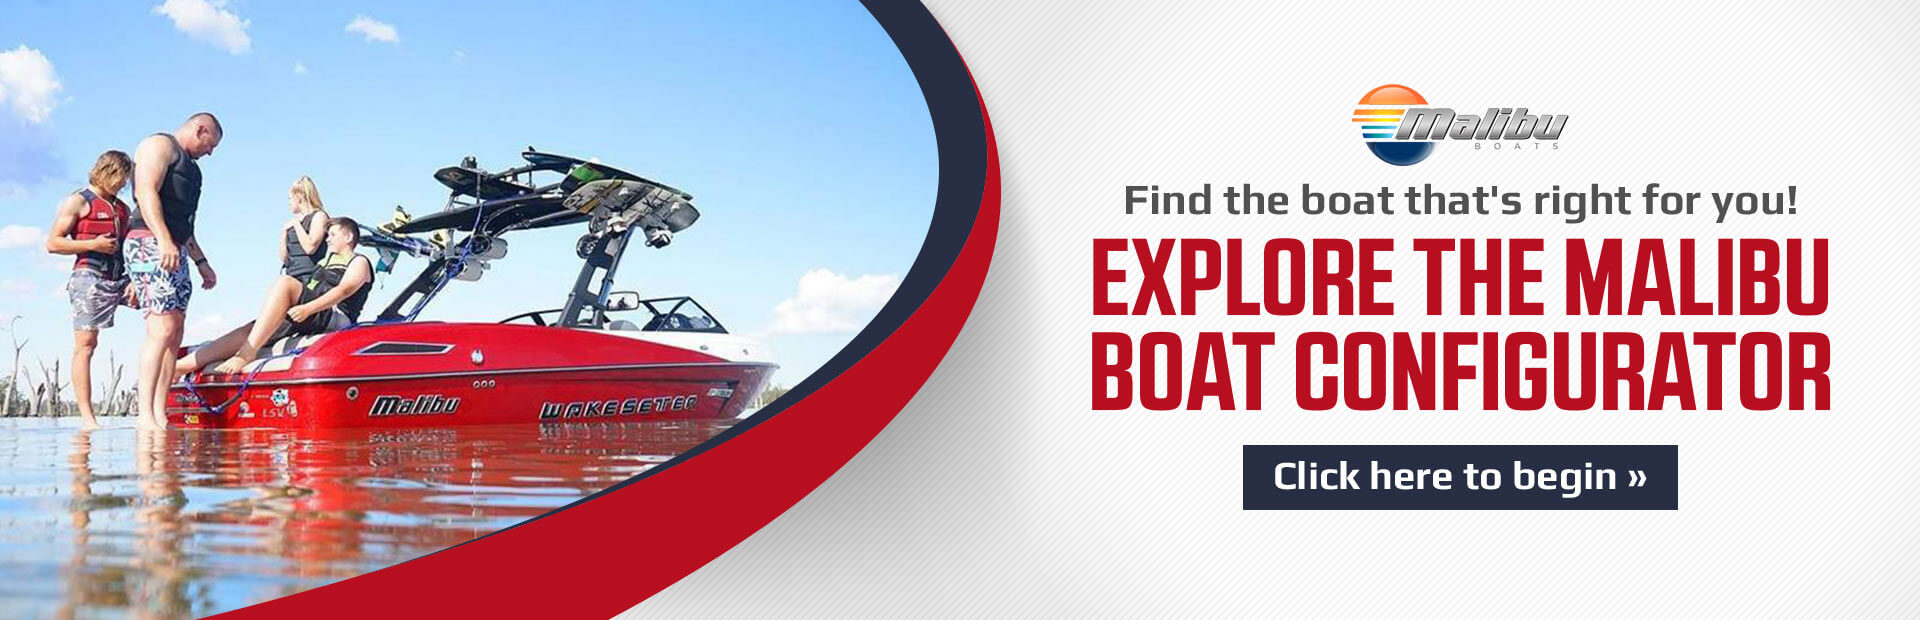 Explore the Malibu Boat Configurator: Click here to begin.